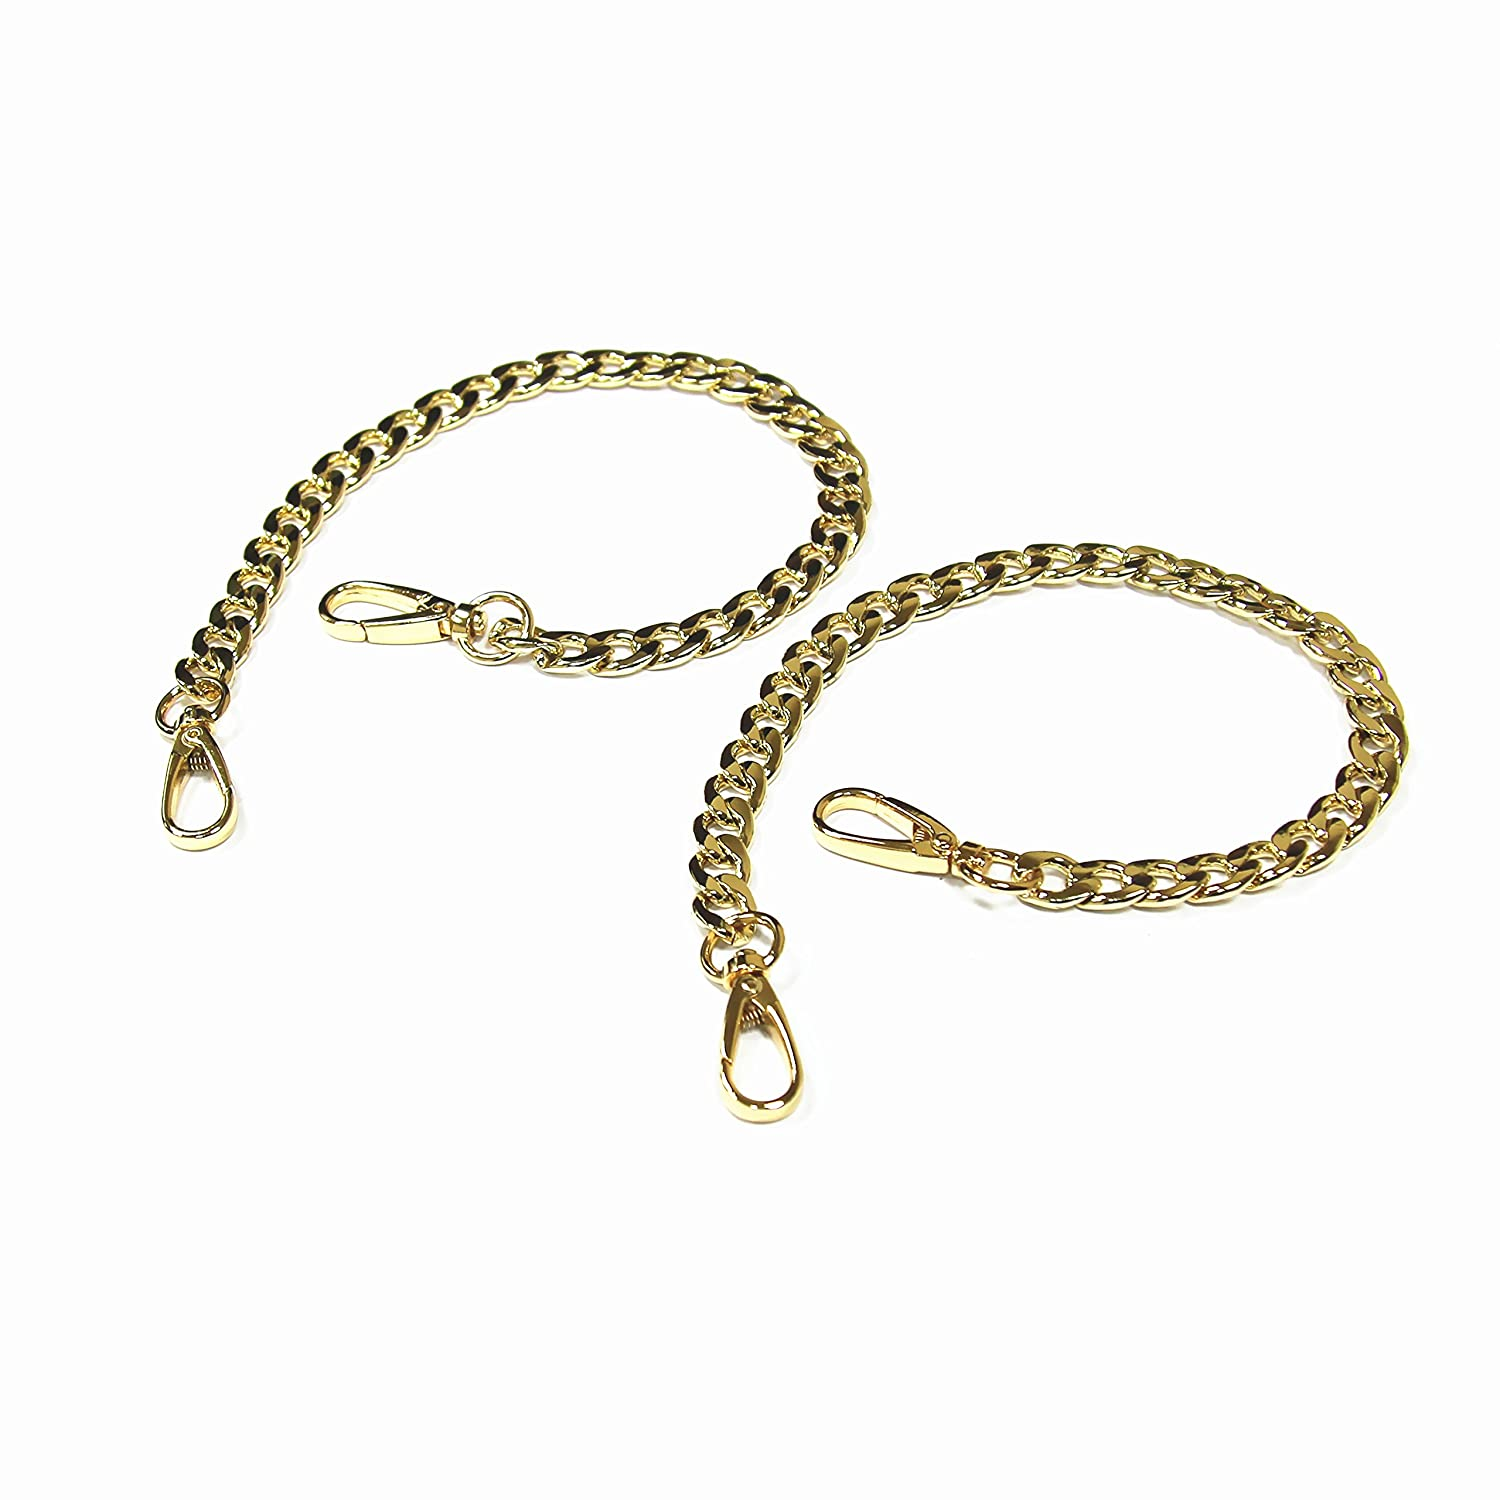 Model Worker 2-Pack 1/2 Wide 15.7 Long DIY Iron Flat Chain Strap Silver Handbag Chains Accessories Purse Clutches Handles,Wrist Straps Replacement Straps, with Metal Buckles (Gold) W-M-Y